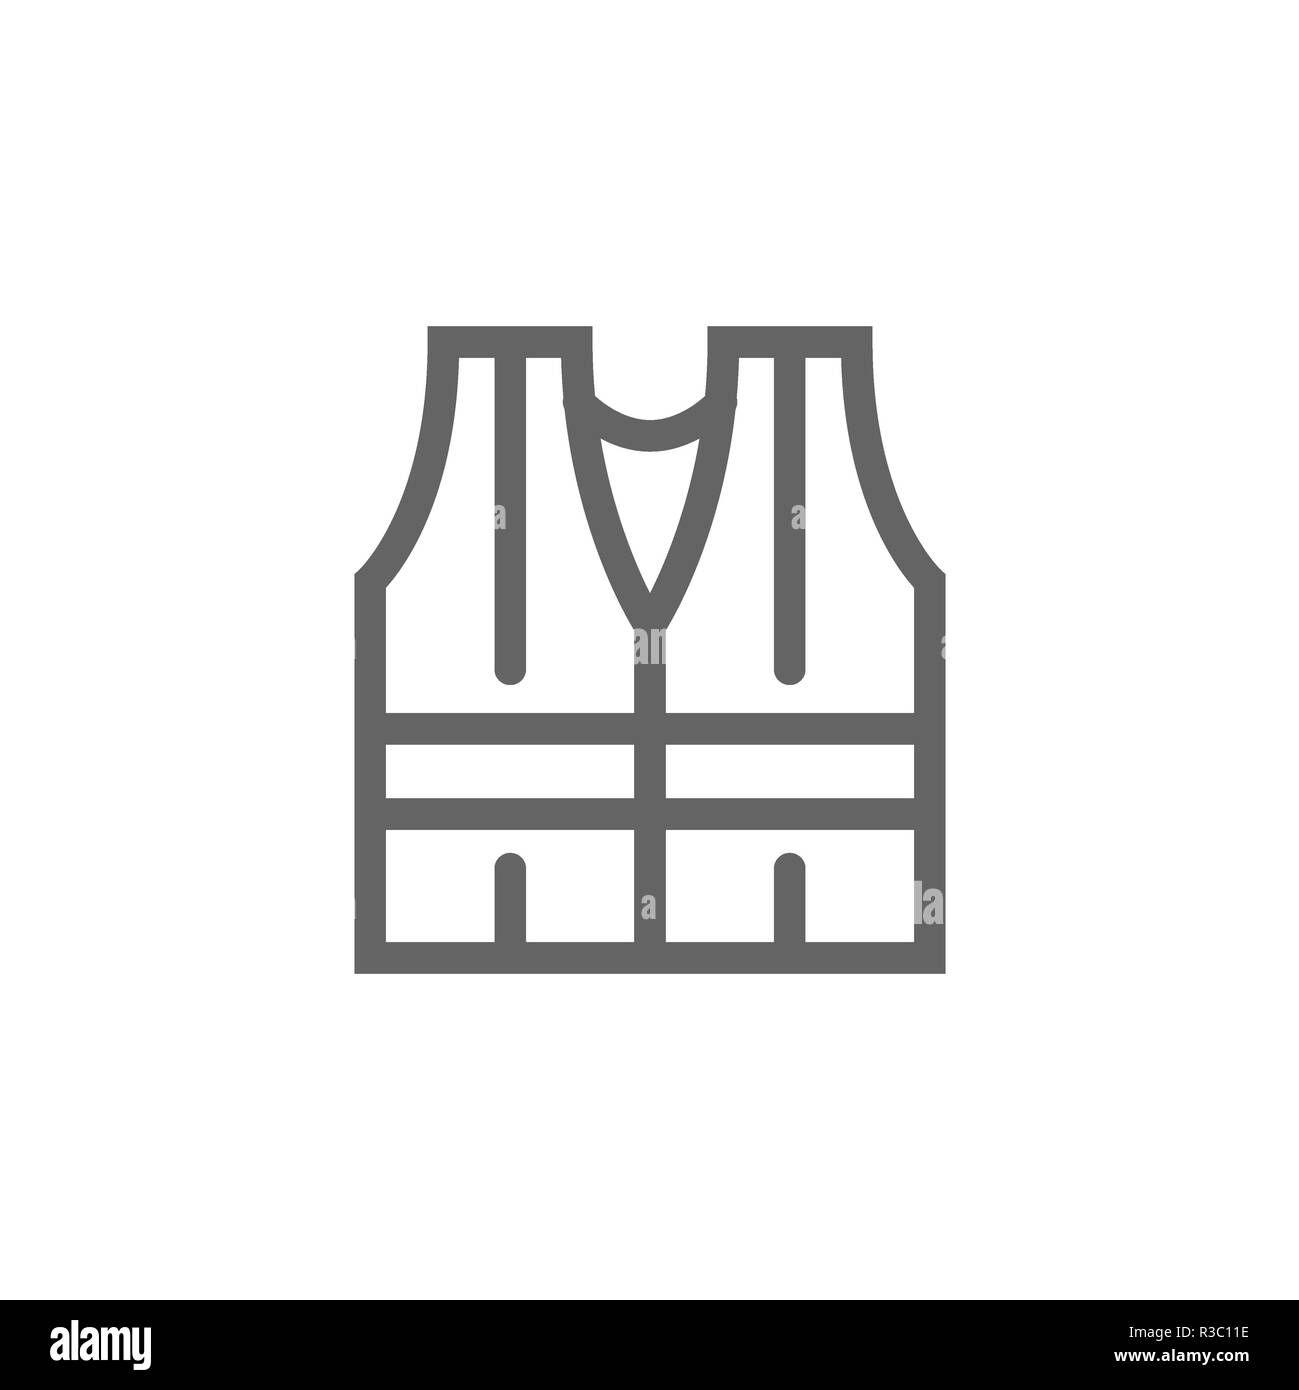 Simple safety vest icon. Symbol and sign illustration design. Isolated on white background - Stock Image